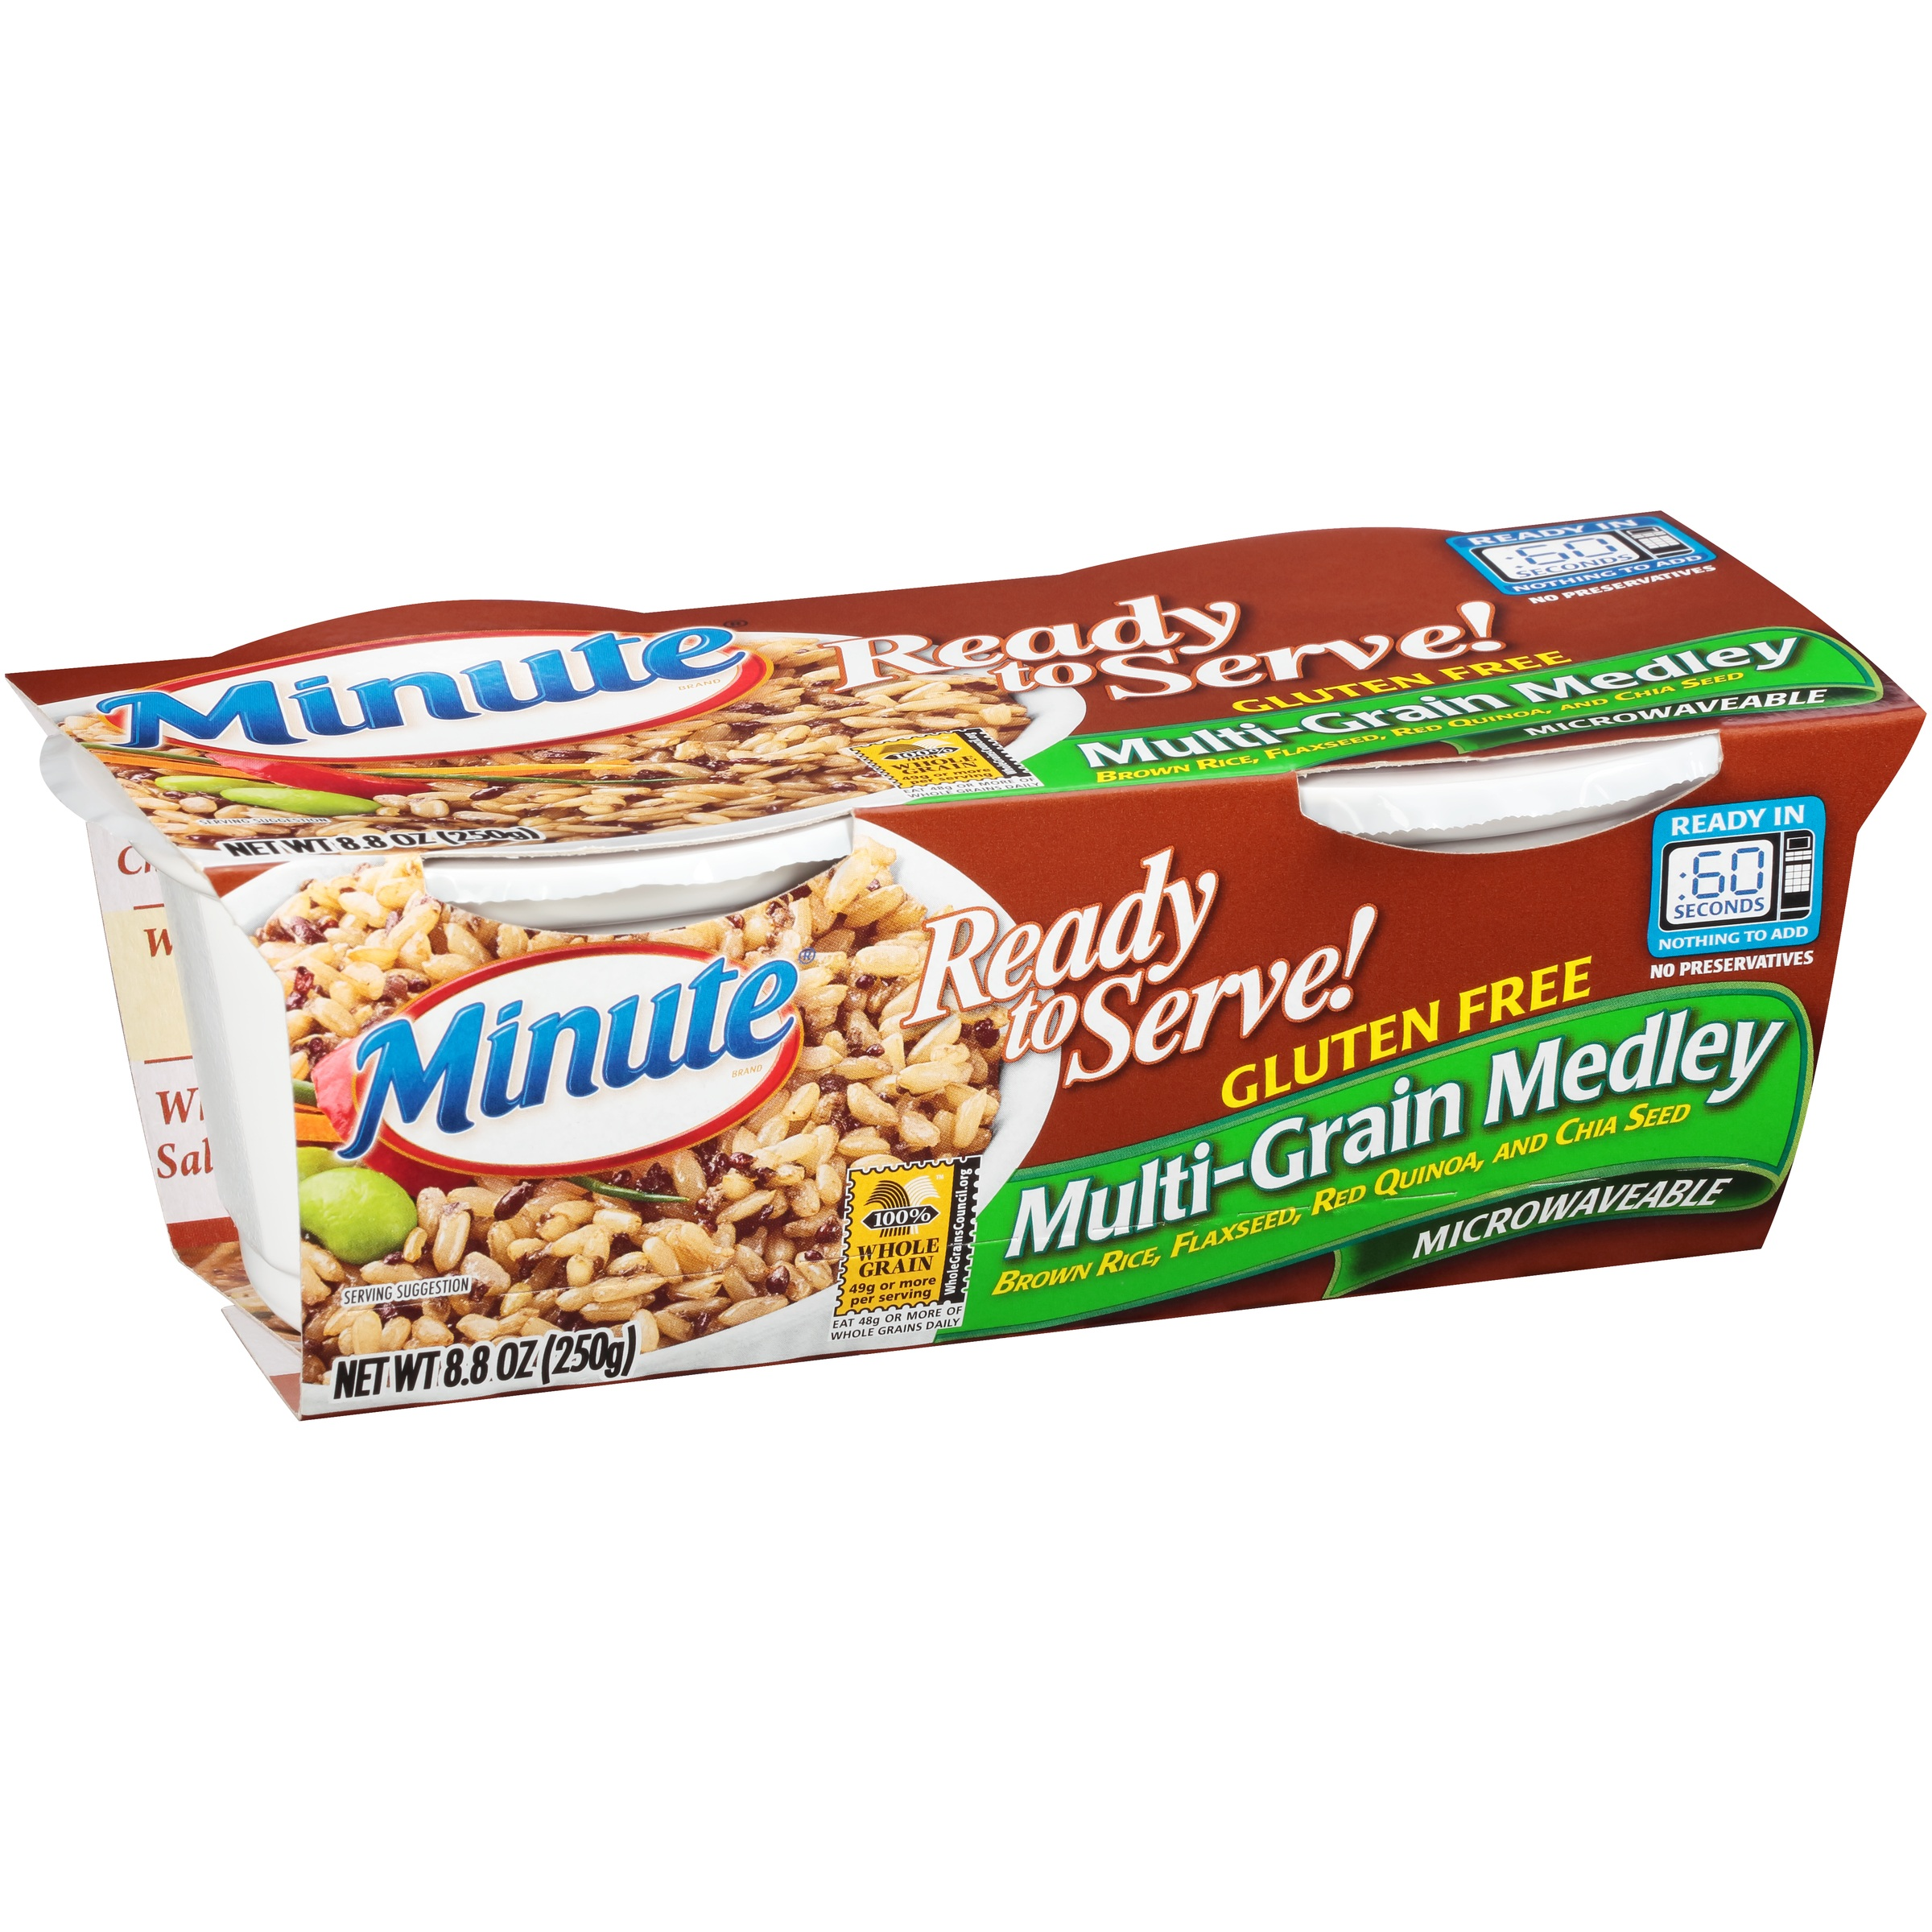 Minute Ready To Serve! Multi-Grain Medley Rice 2 Count Cups